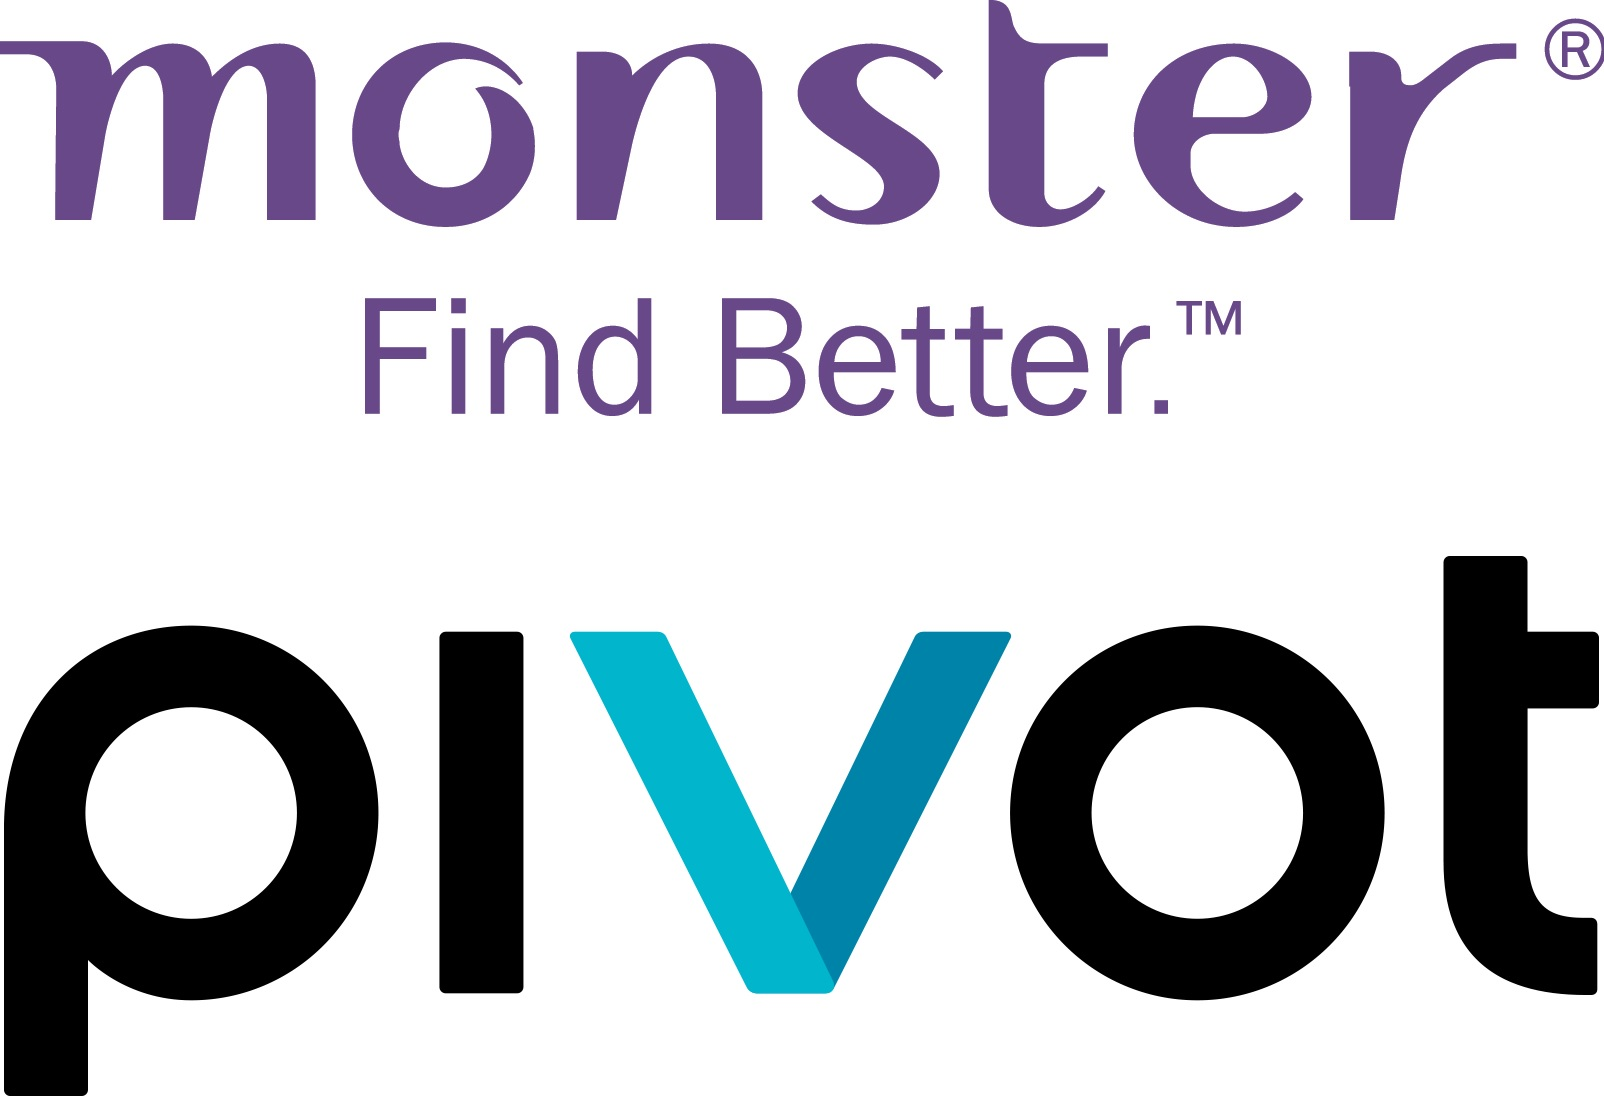 Pivot Monster Take Part Live Find Better Pivot and Monster Help Millennials with Take Part Live